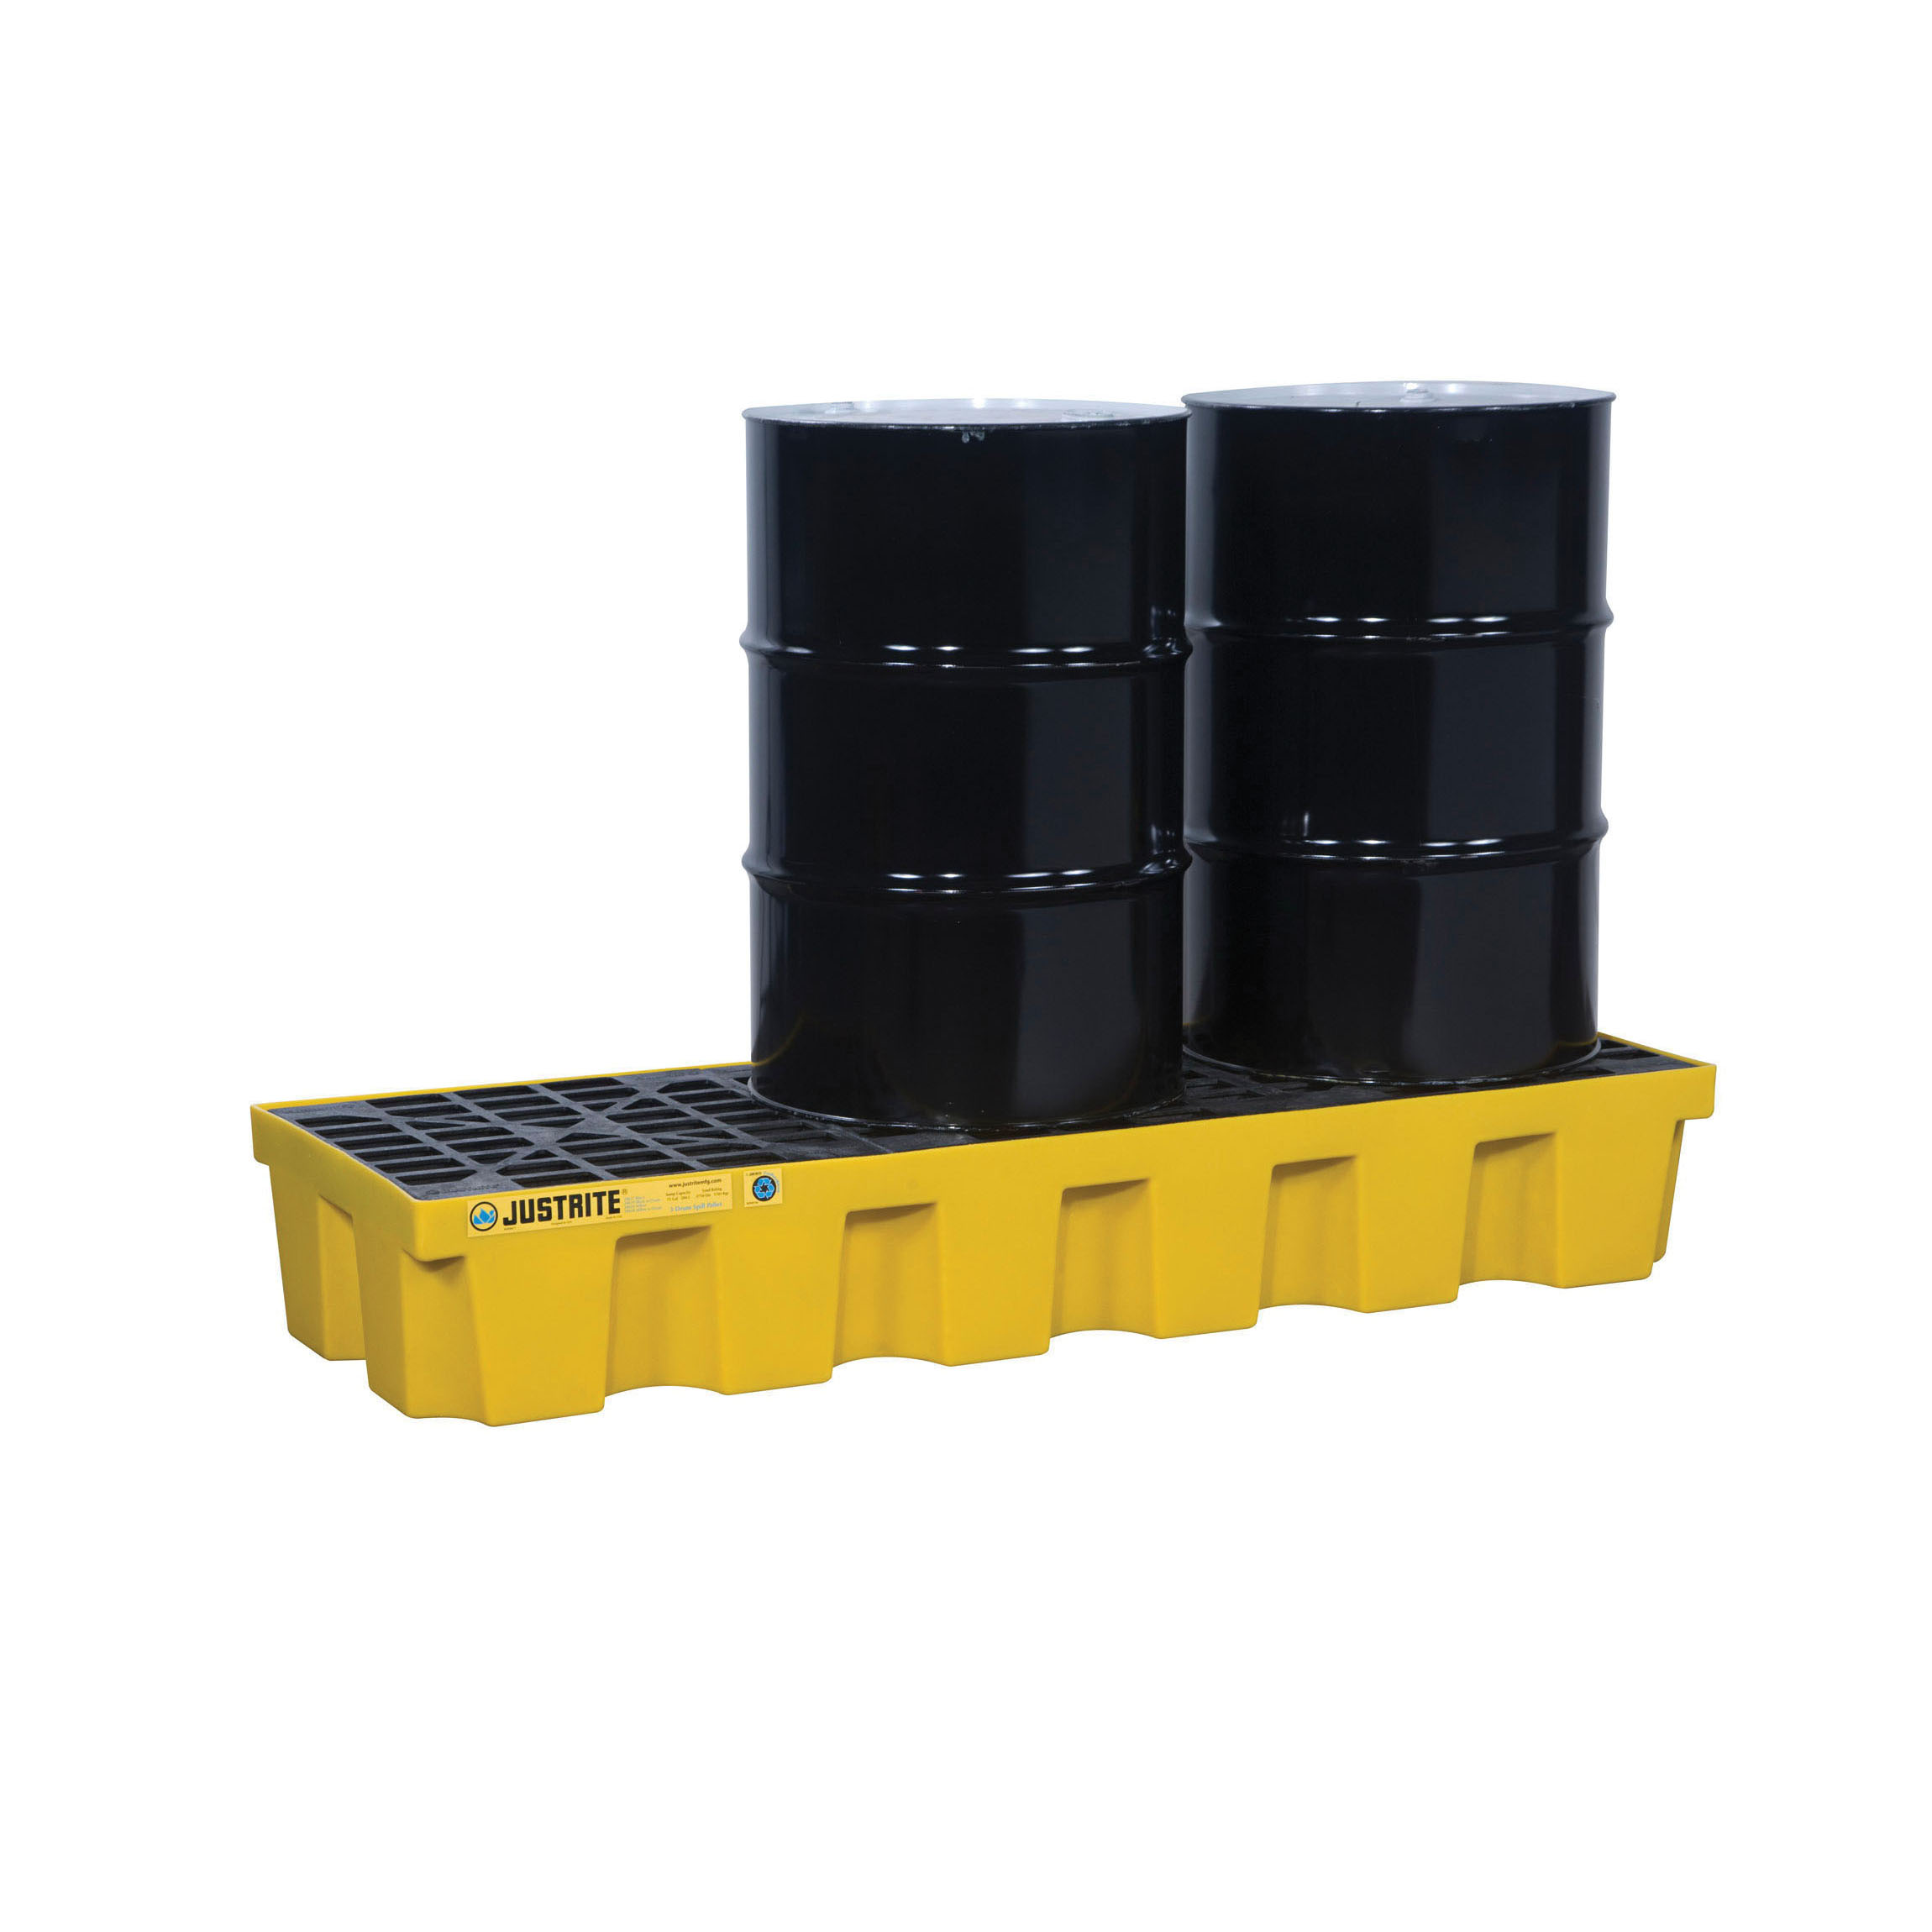 Justrite® 28628 EcoPolyBlend™ Spill Control Pallet With Drain, 3 Drums, 75 gal Spill, 3750 lb Load, 35% Recycled Polyethylene